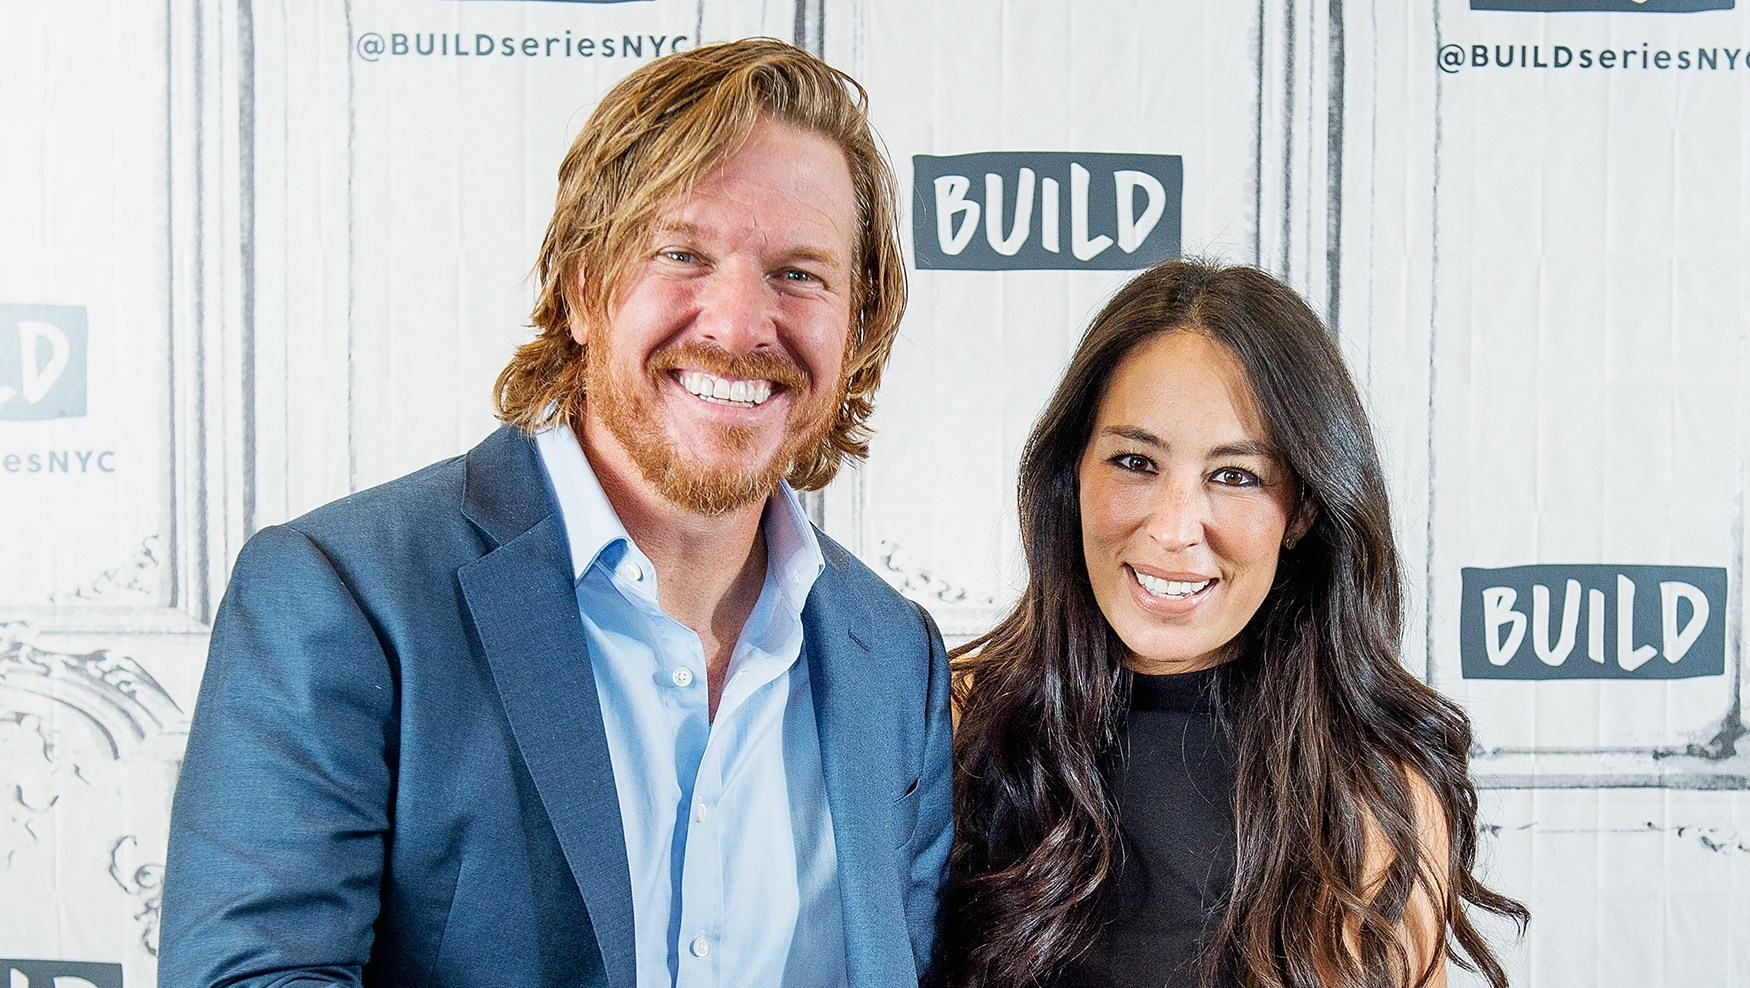 Joanna Gaines Chip Gaines Car Seat Photo Instagram